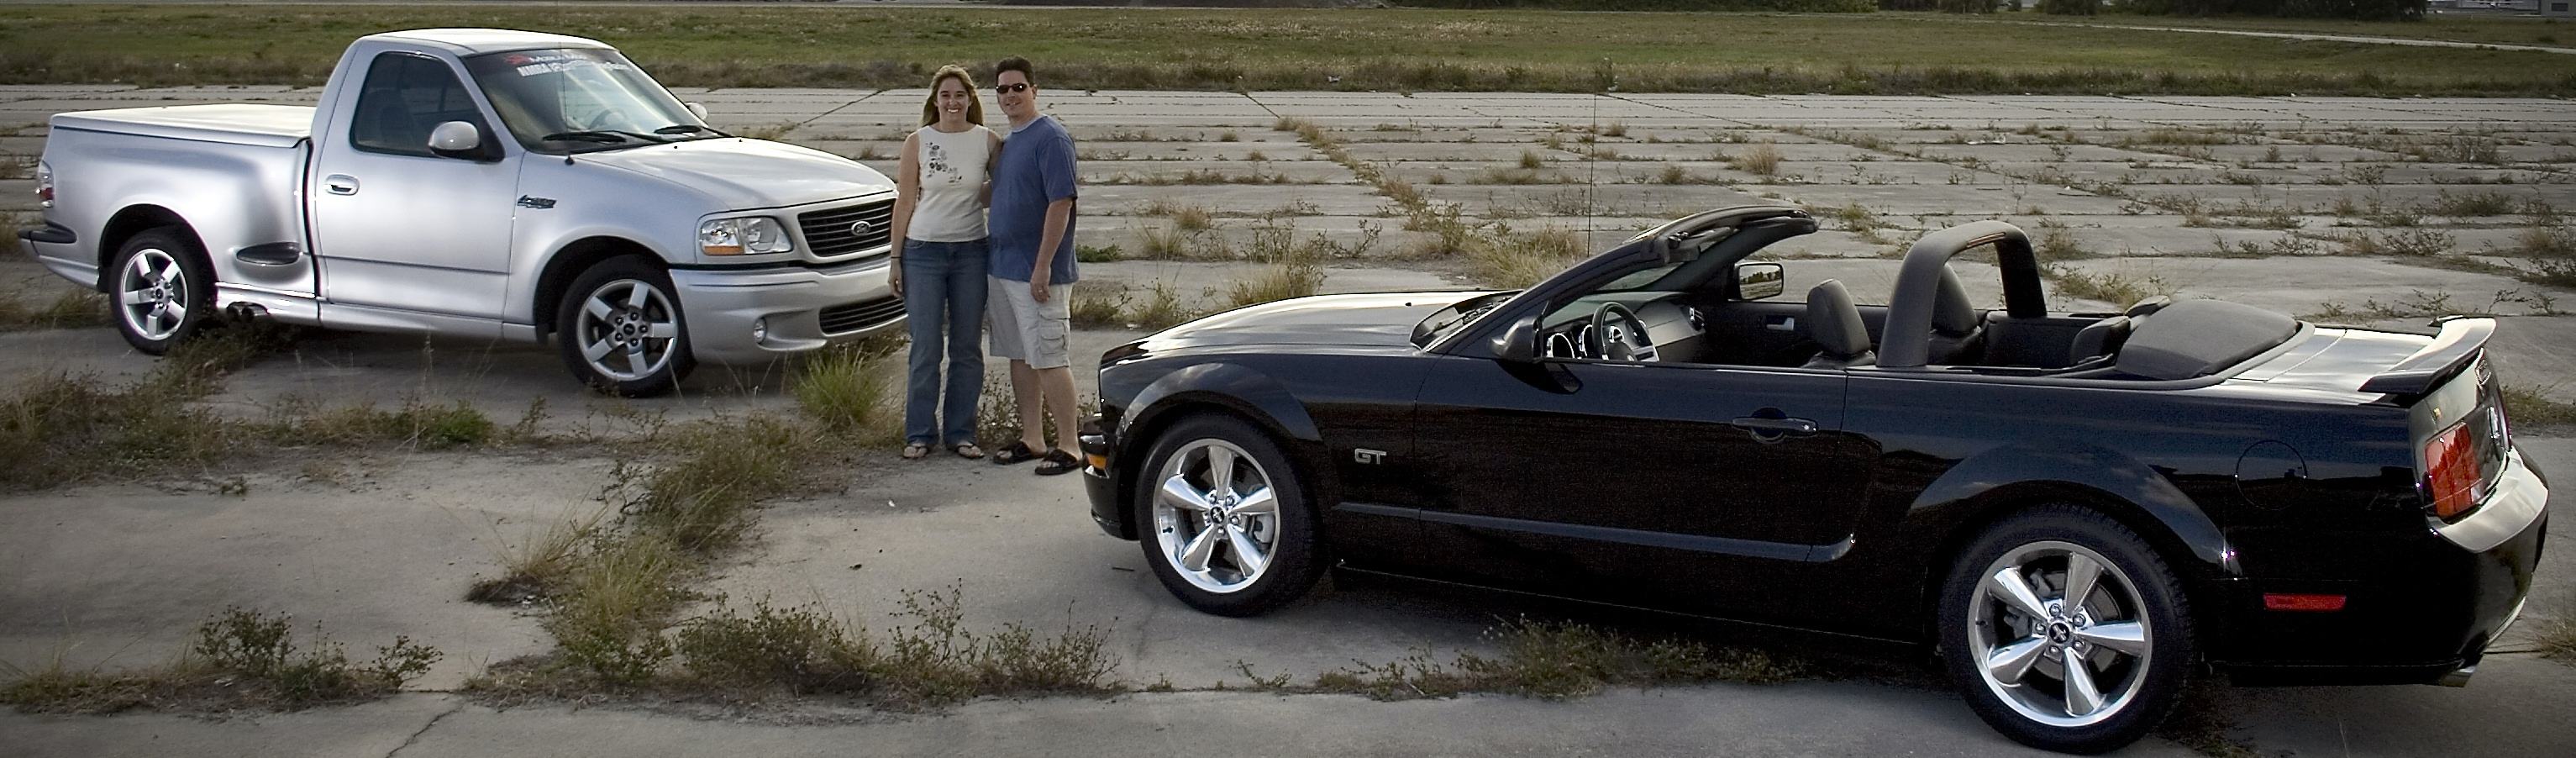 2006 Ford Mustang GT CONVERTIBLE MAGNACHARGER